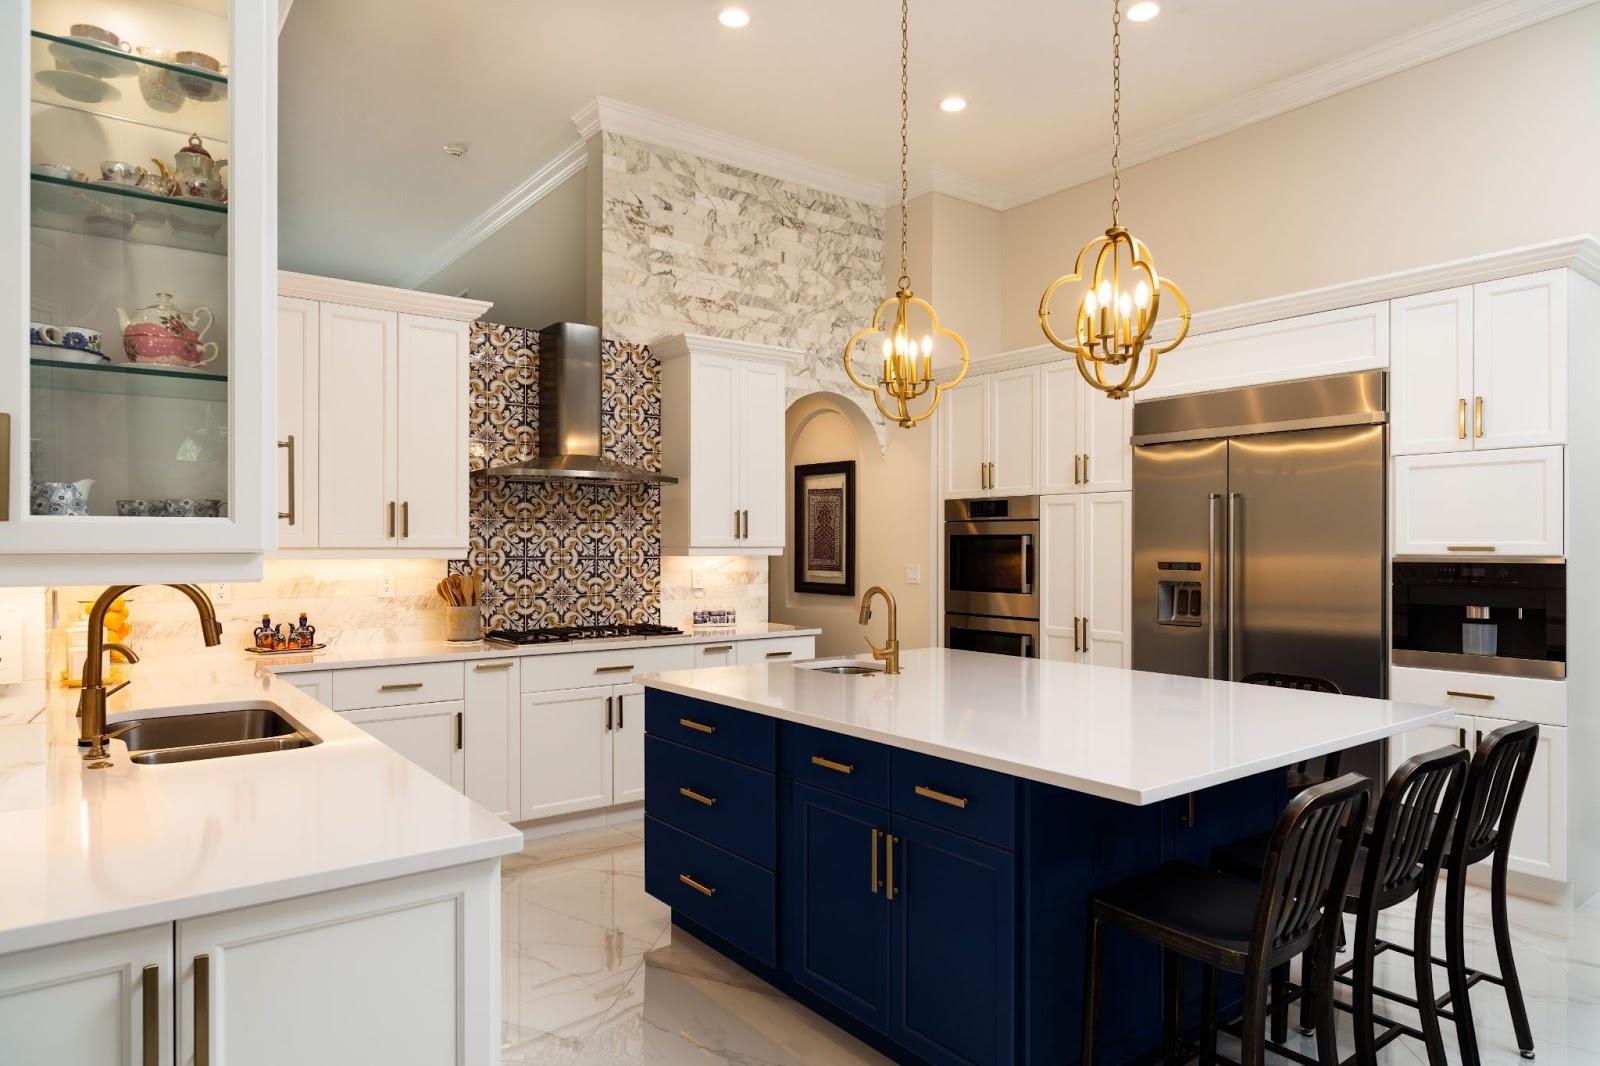 luxurious kitchen with black and white cabinets, an island, and gold hardware